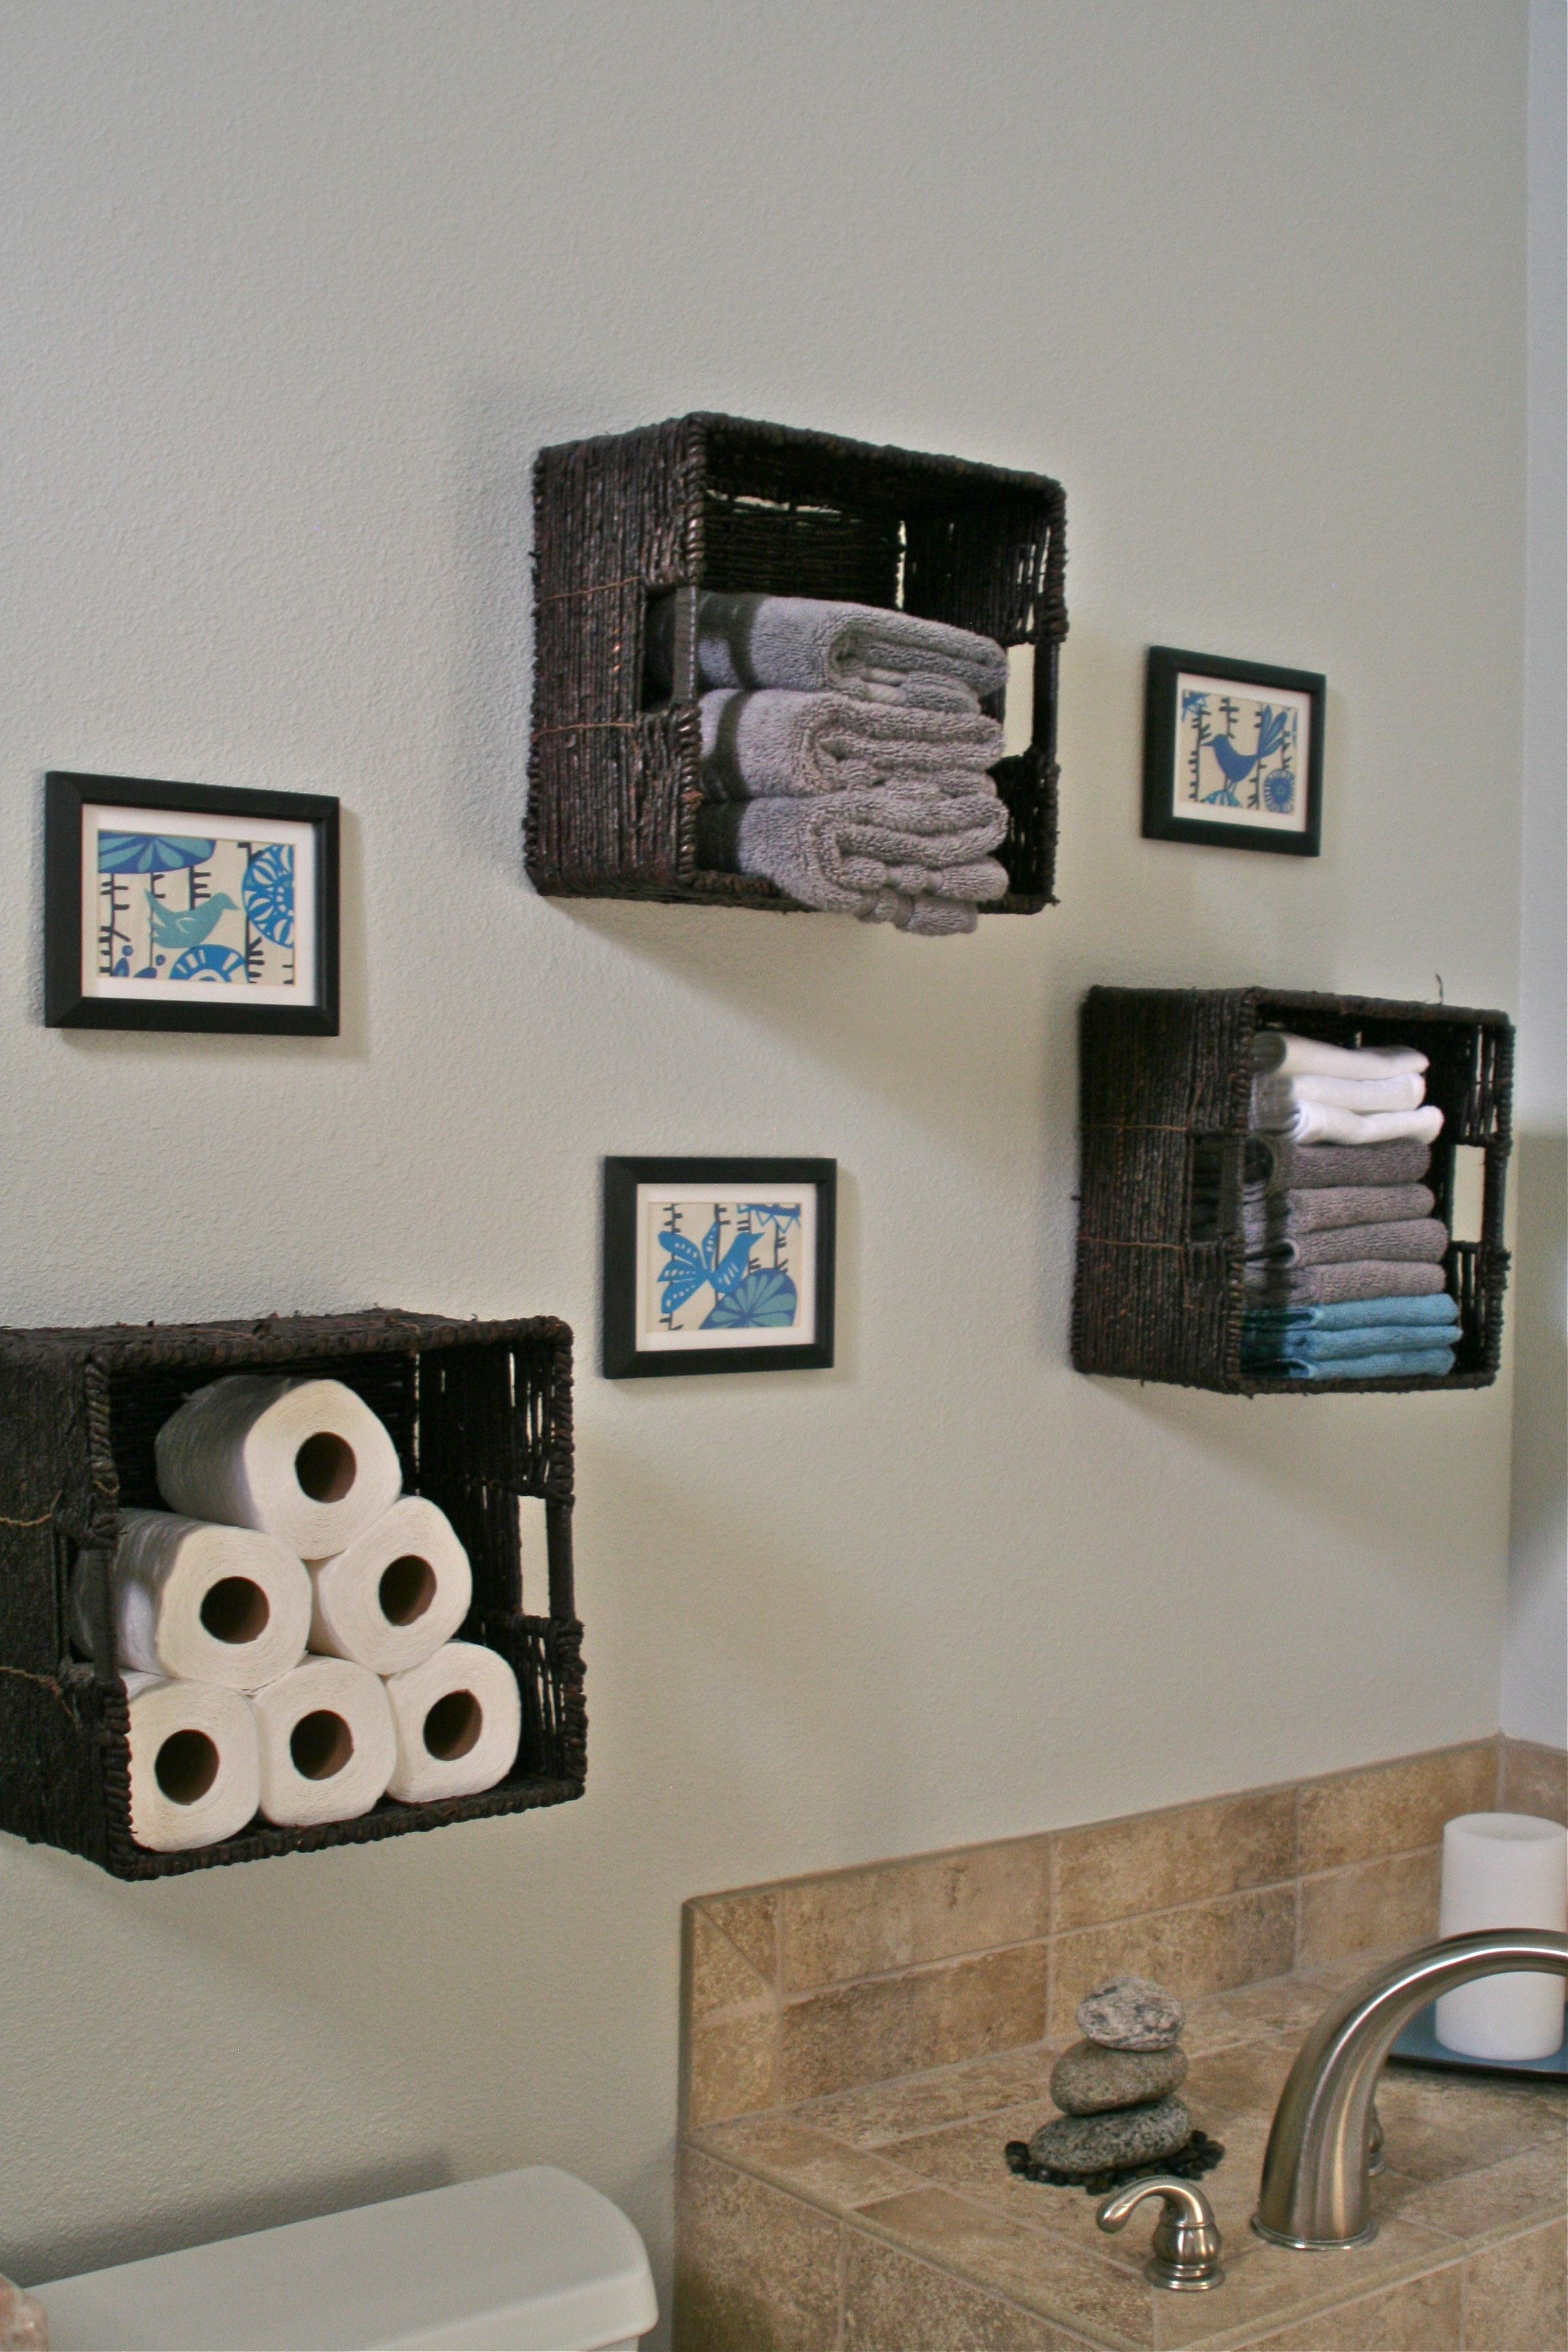 45 Creative Towel Storage Ideas To Save Your Bathroom Space With